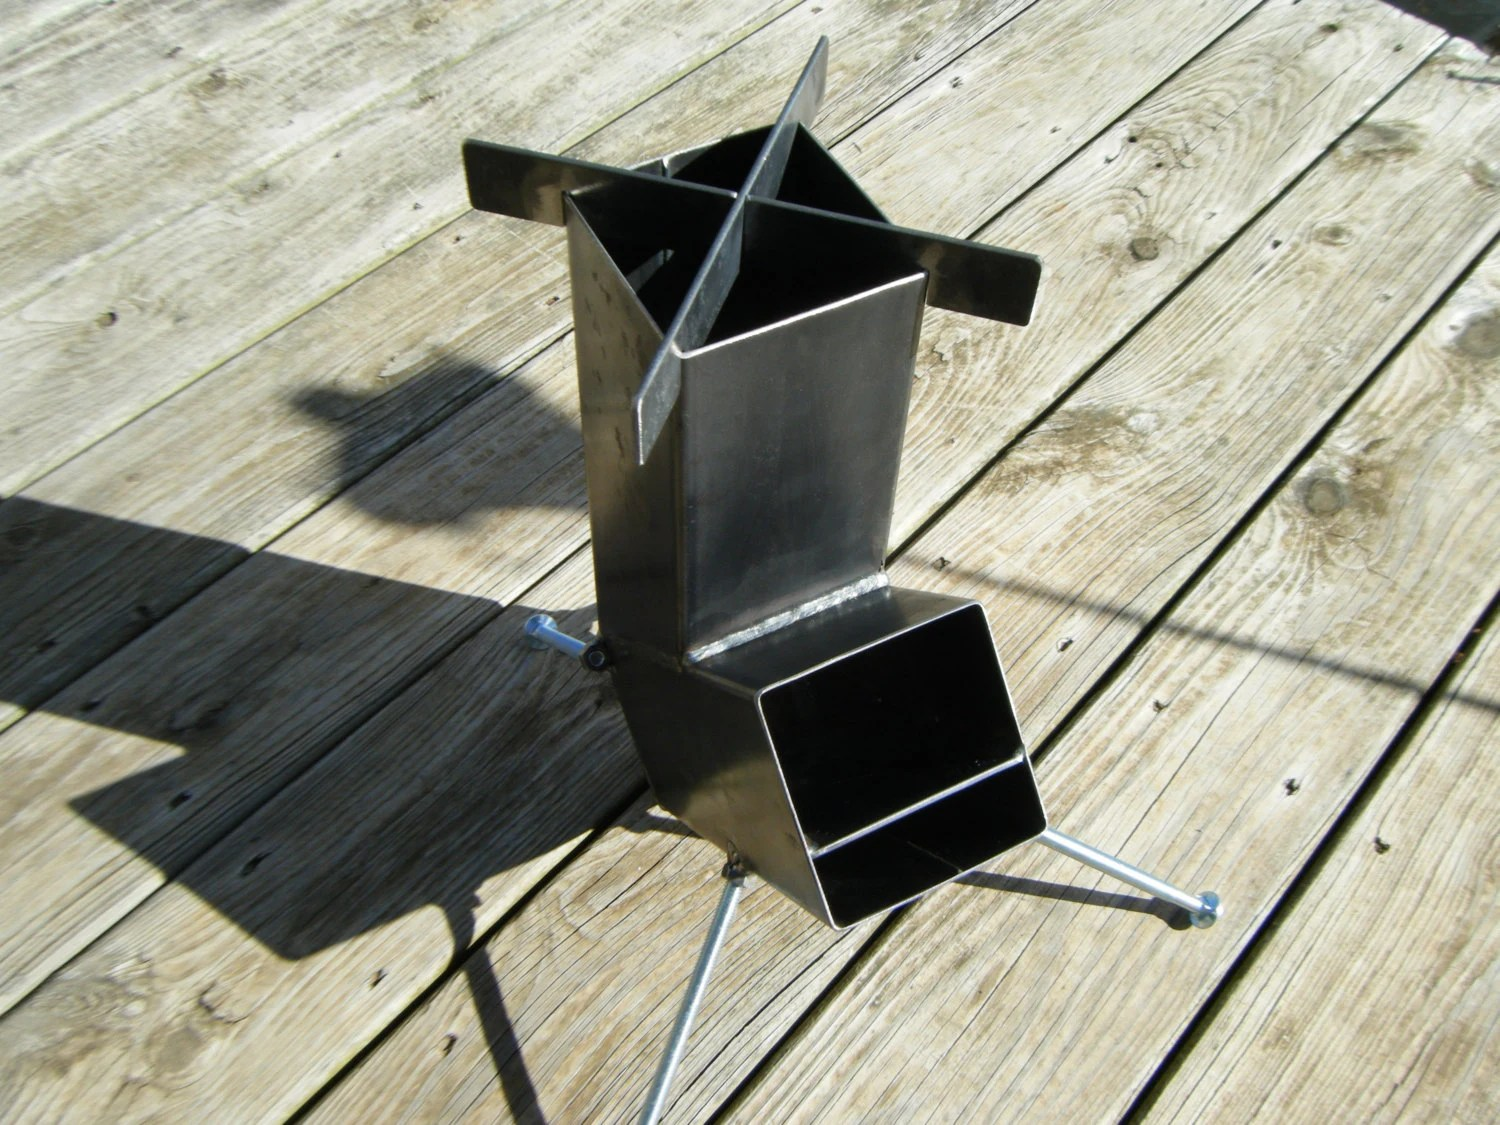 Rocket Stove Self Feeding Gravity Feed Design all by